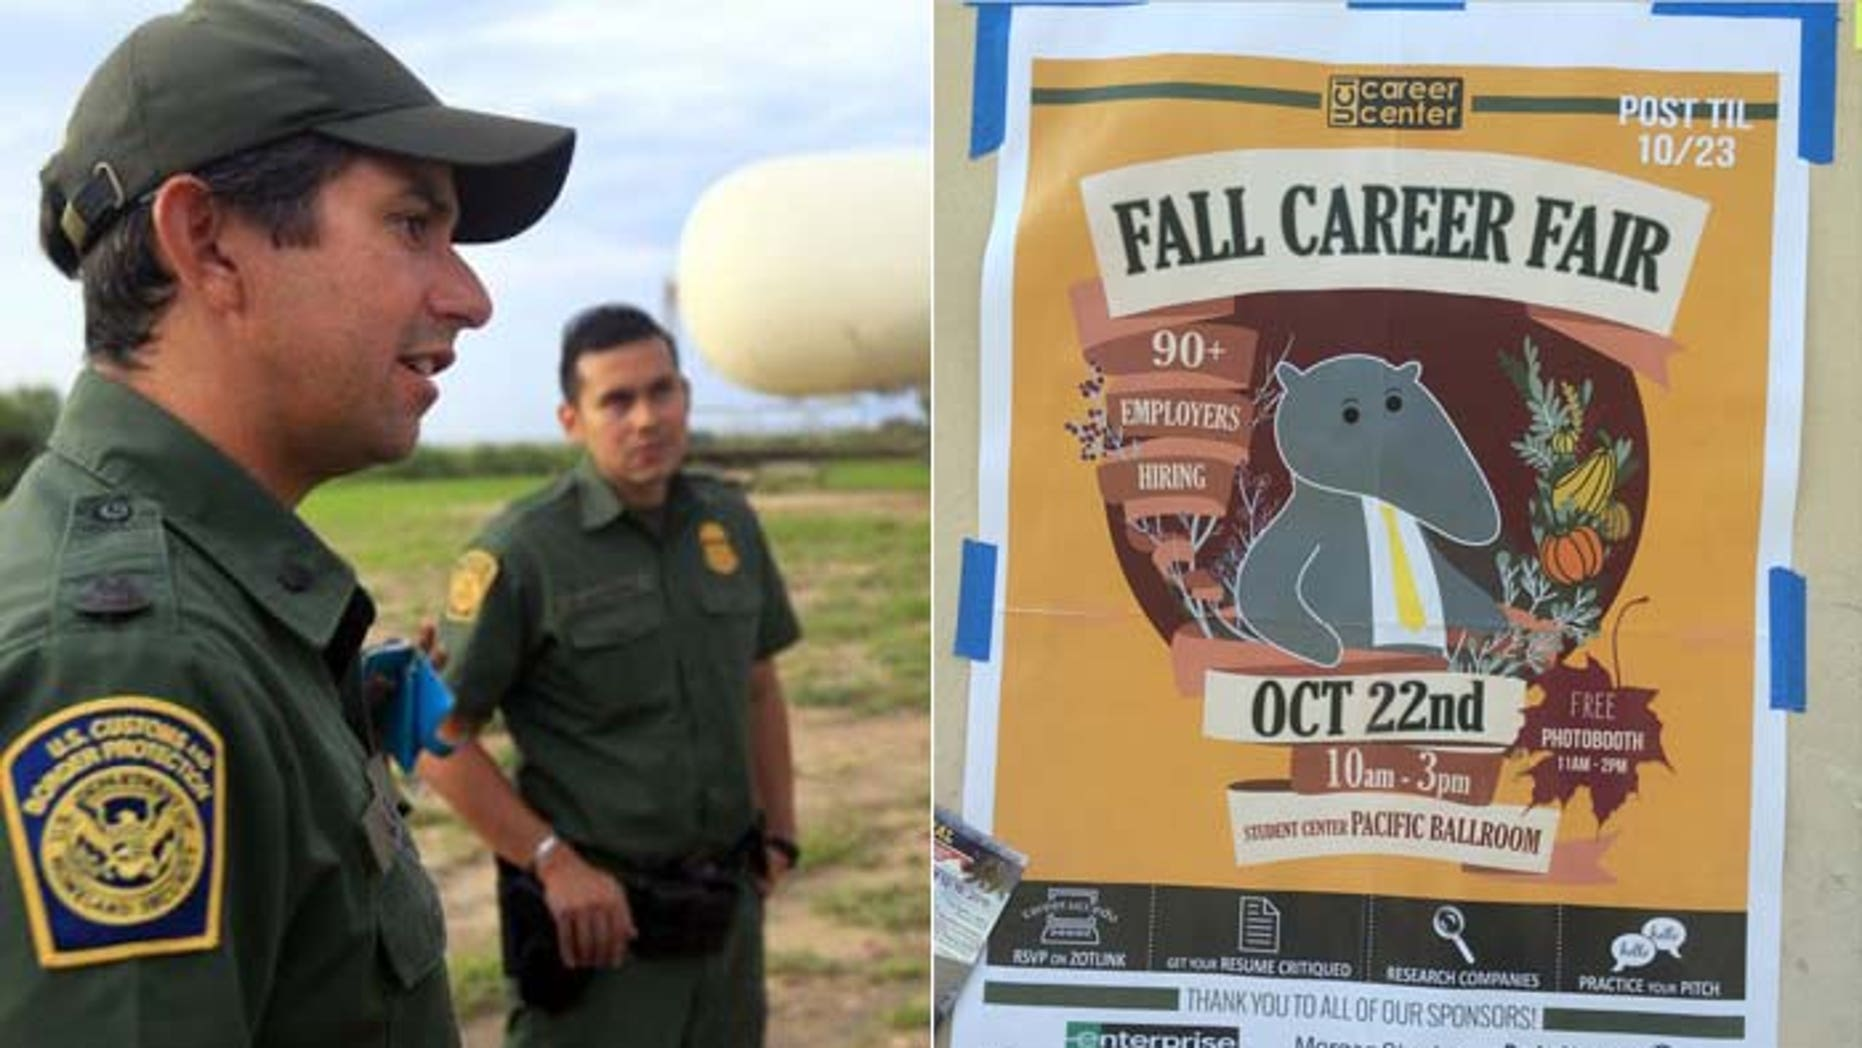 Military recruiters took part in the job fair, but the Border Patrol pulled out amid protests and fears for the safety of recruiters, according to an agency spokesman.